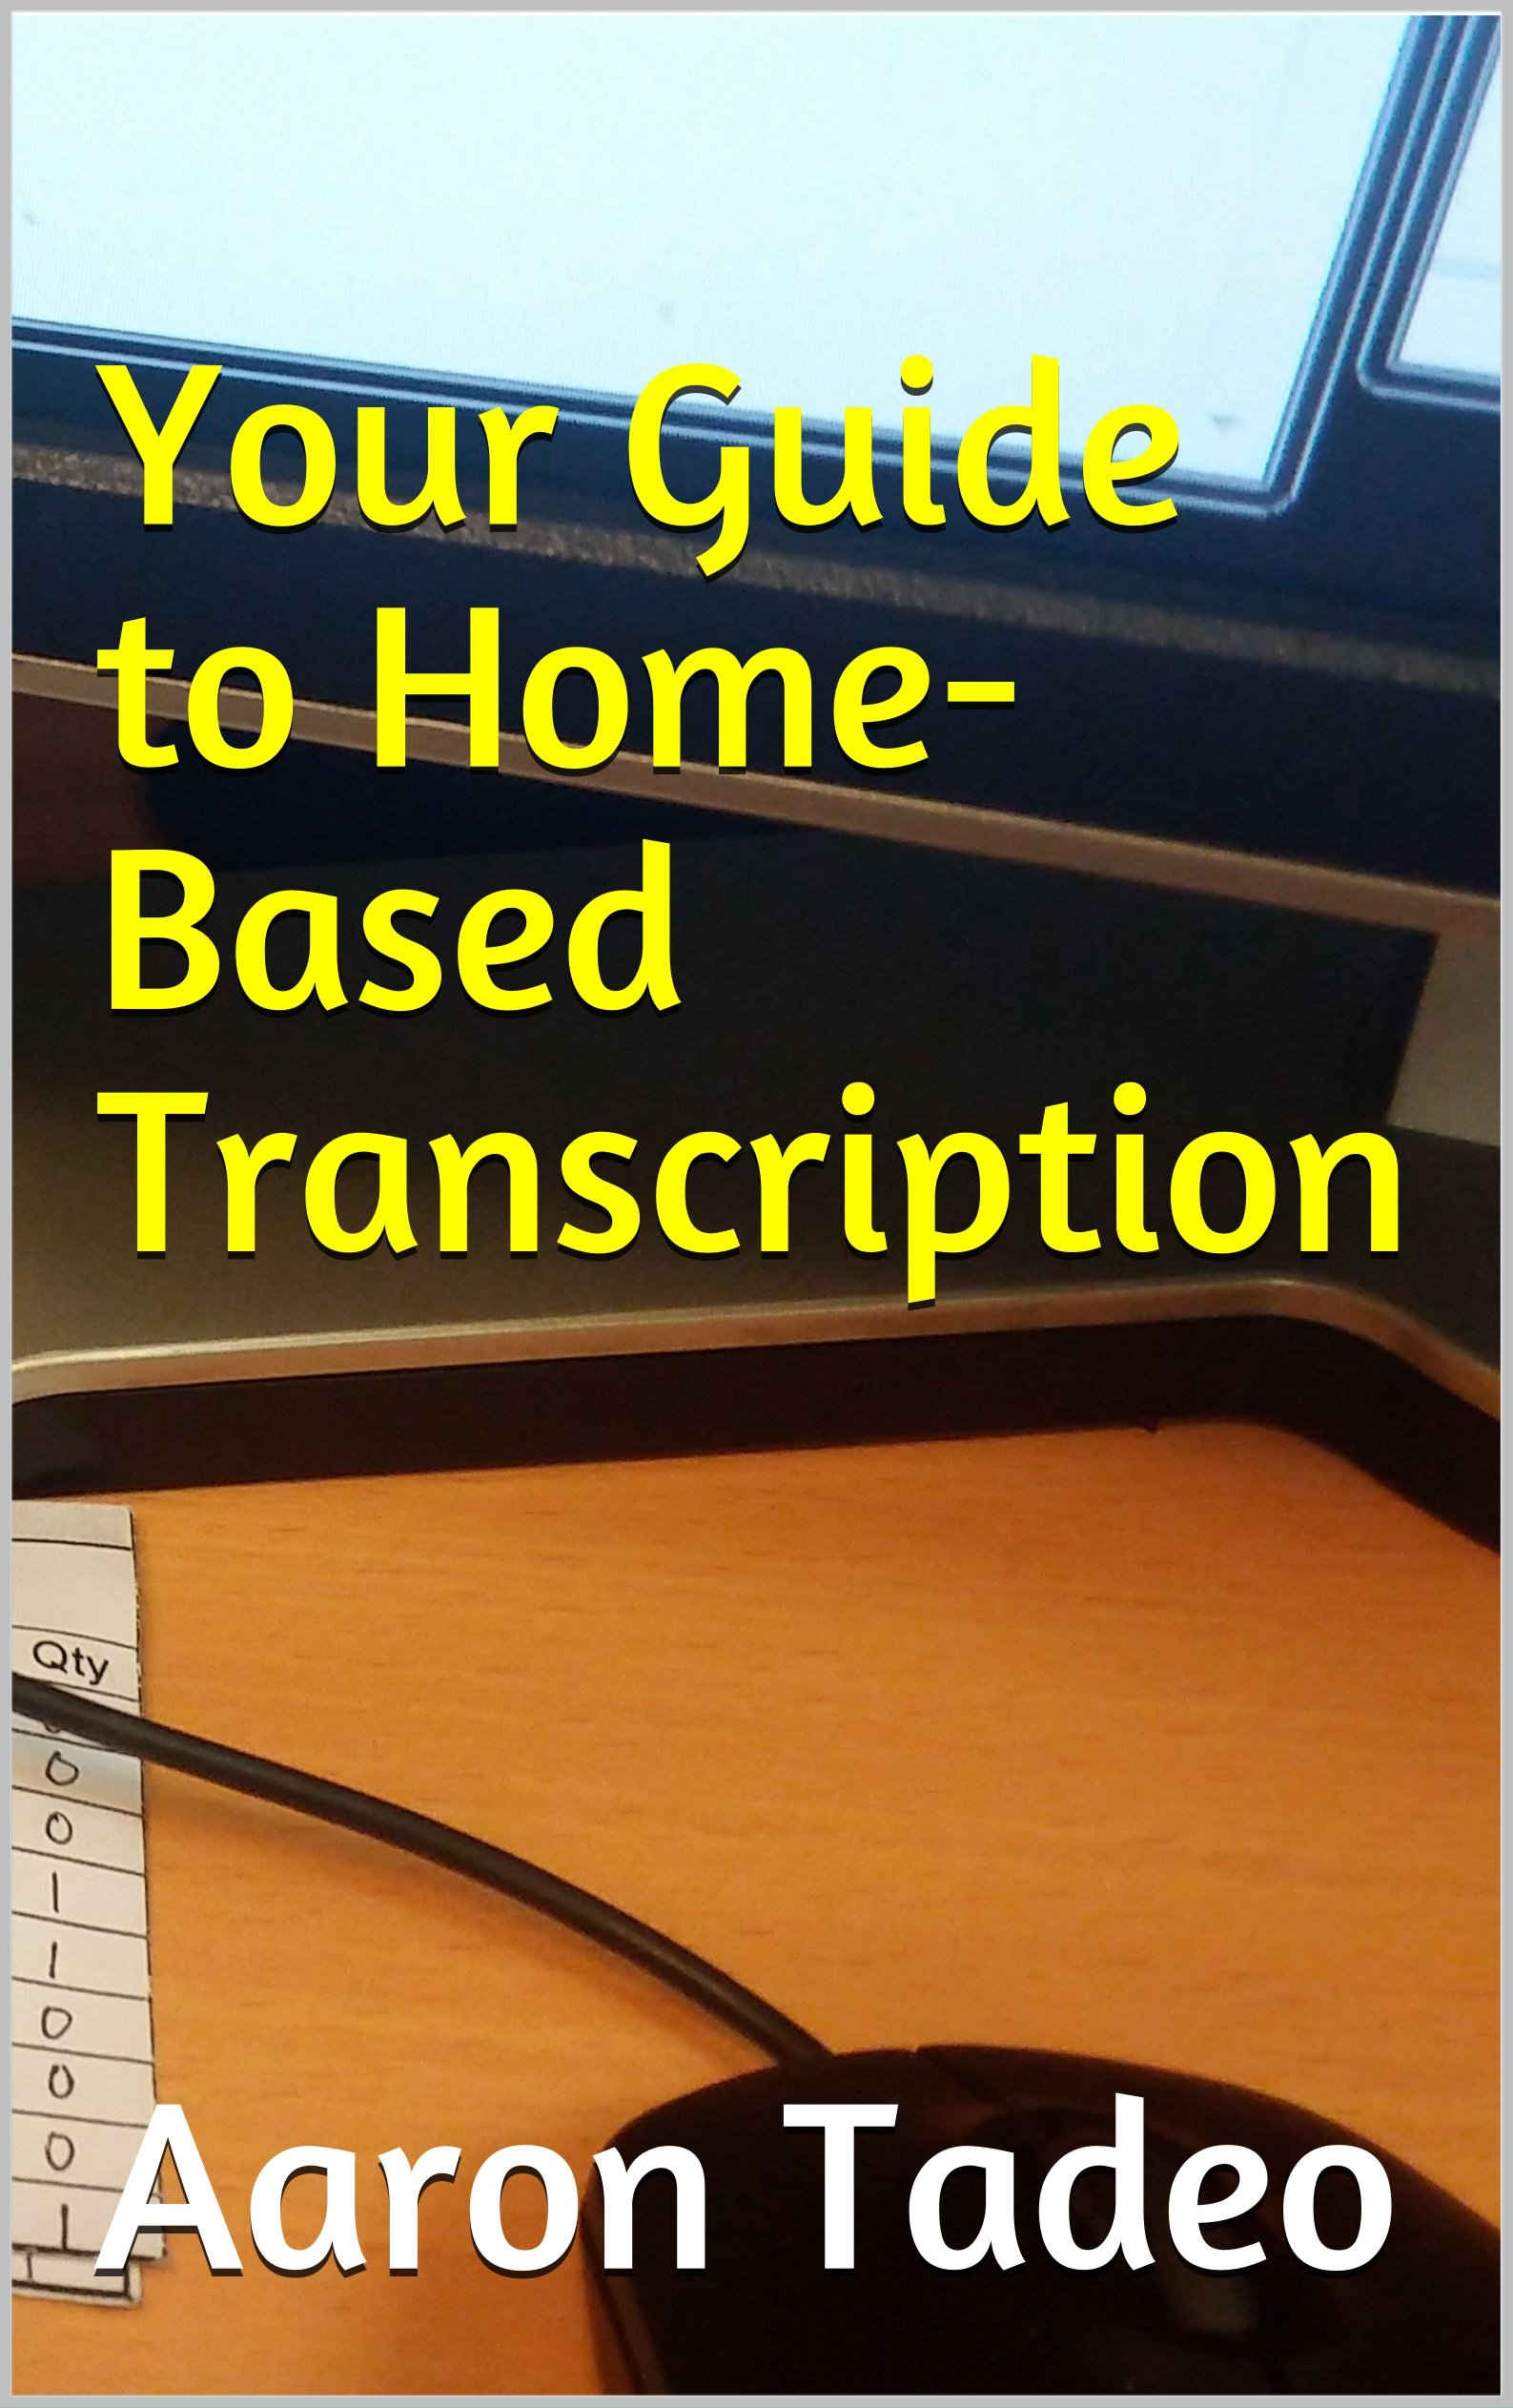 Your Guide to Home-Based Transcription